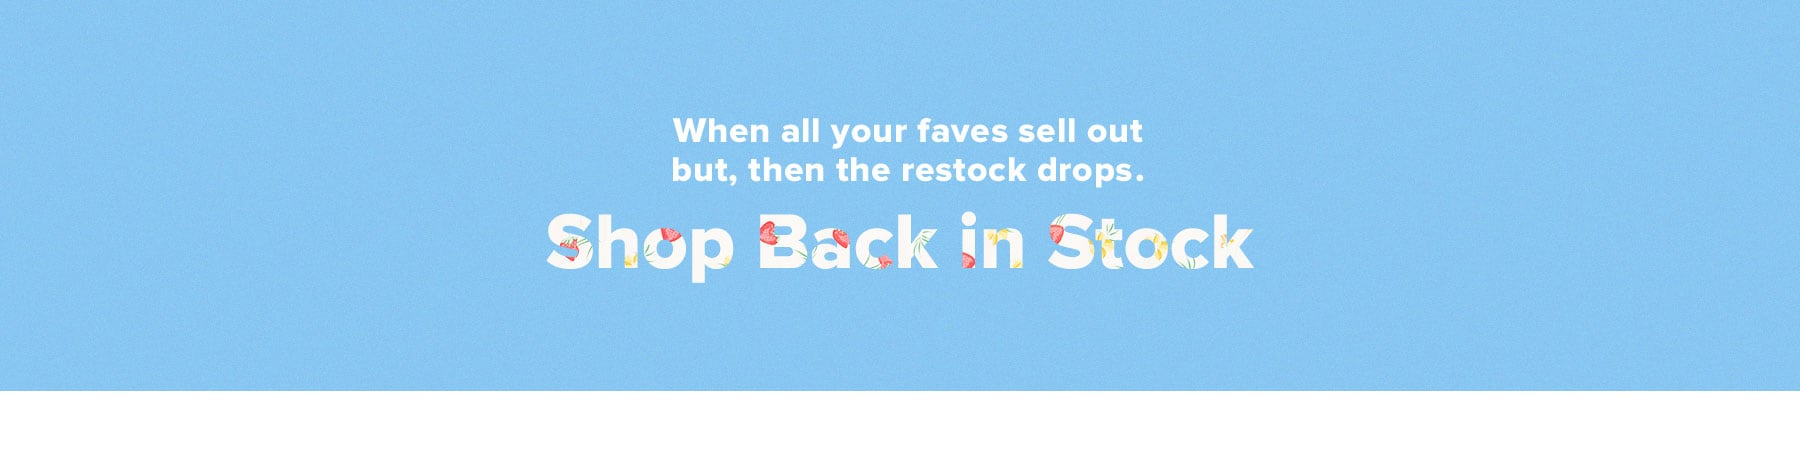 When all your faves sell out but, then the restock drops. Shop Back in Stock.